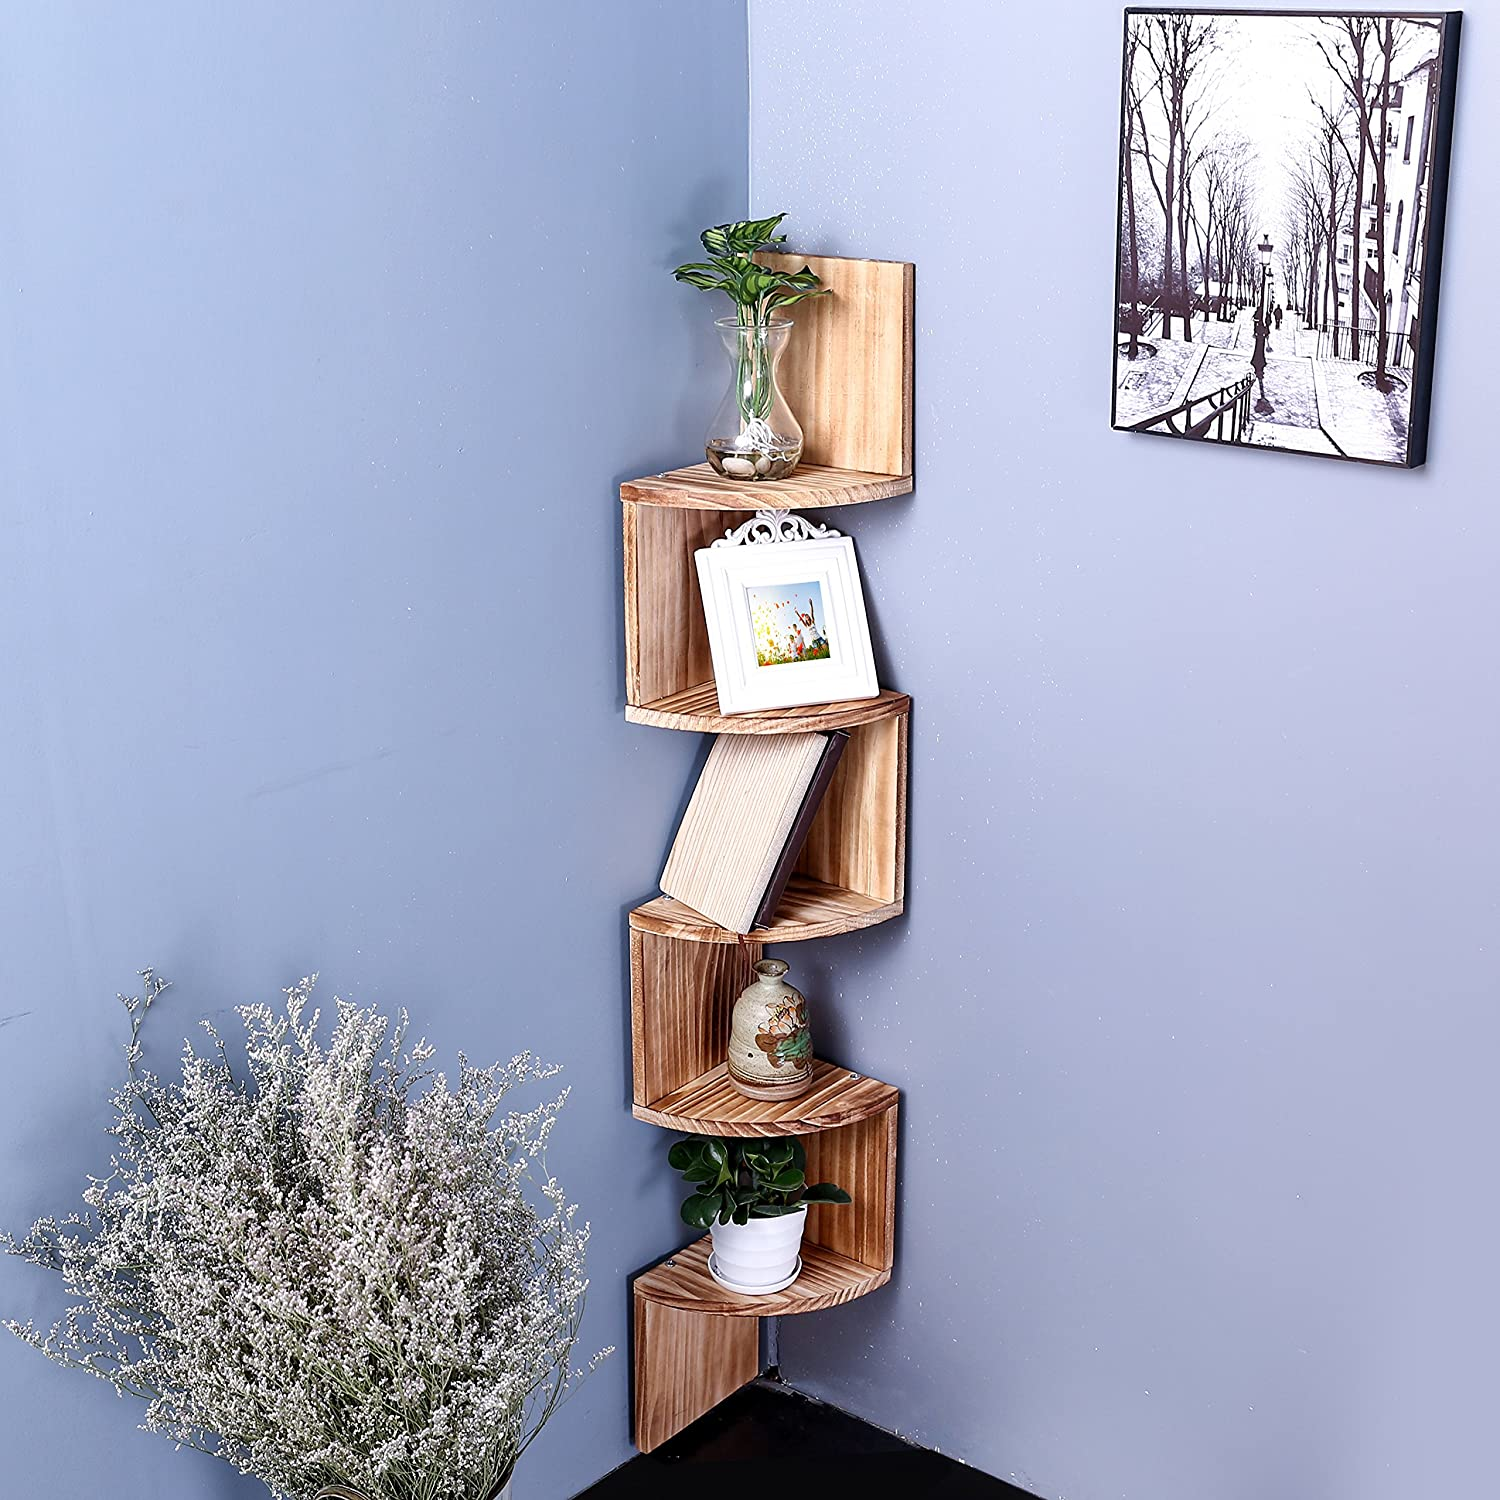 Amazon.com: Wall Mount Wood Corner Shelves, 5 Tier Storage Display ...